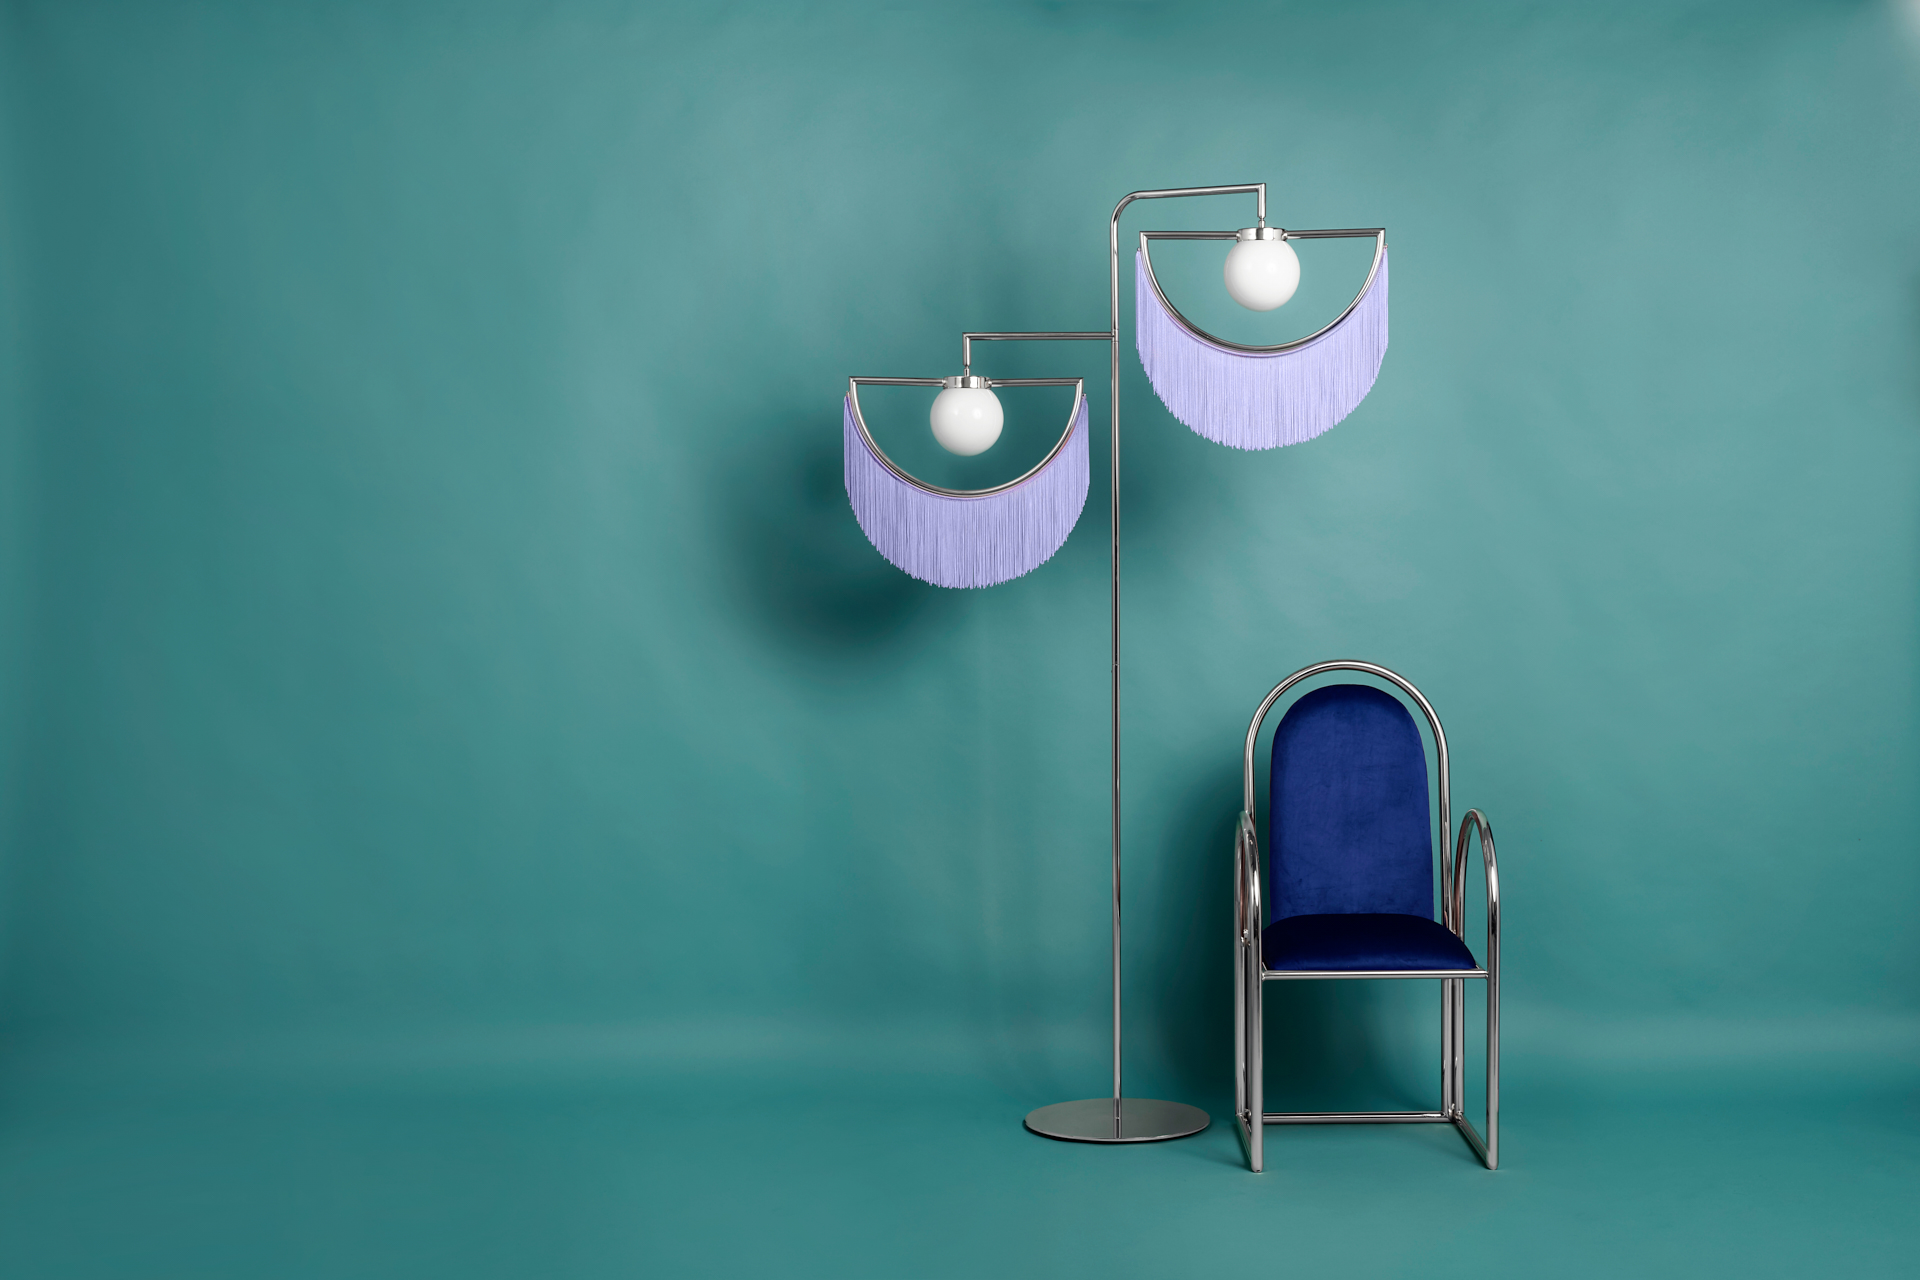 Arco Houtique lamps by Masquespacio